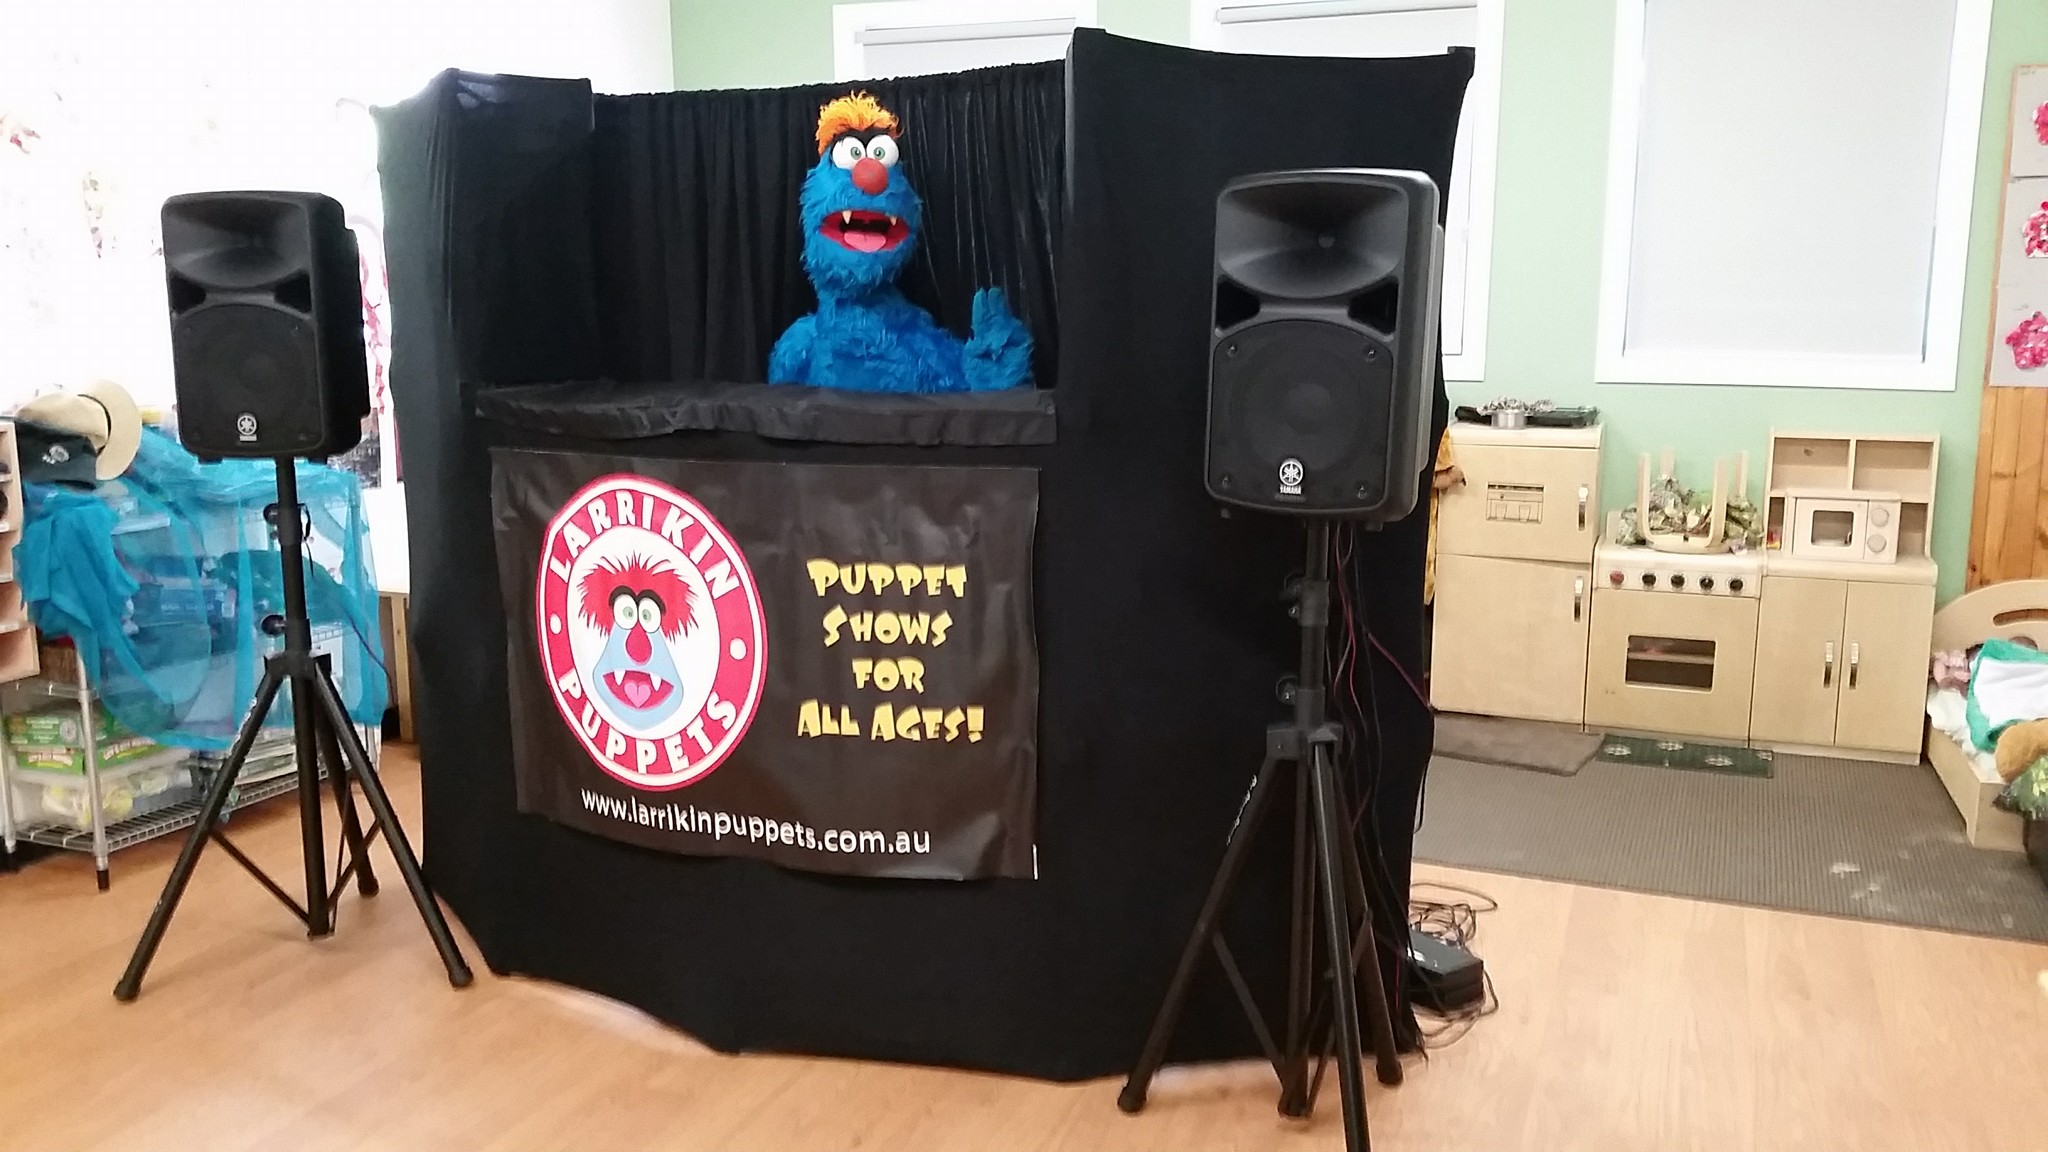 Children's Entertainment, Children's Entertainers, Party Entertainment For Hire | Puppet Show, Puppetry Workshops - Childcare Centres, Little Seeds Early Learning, Palm Beach